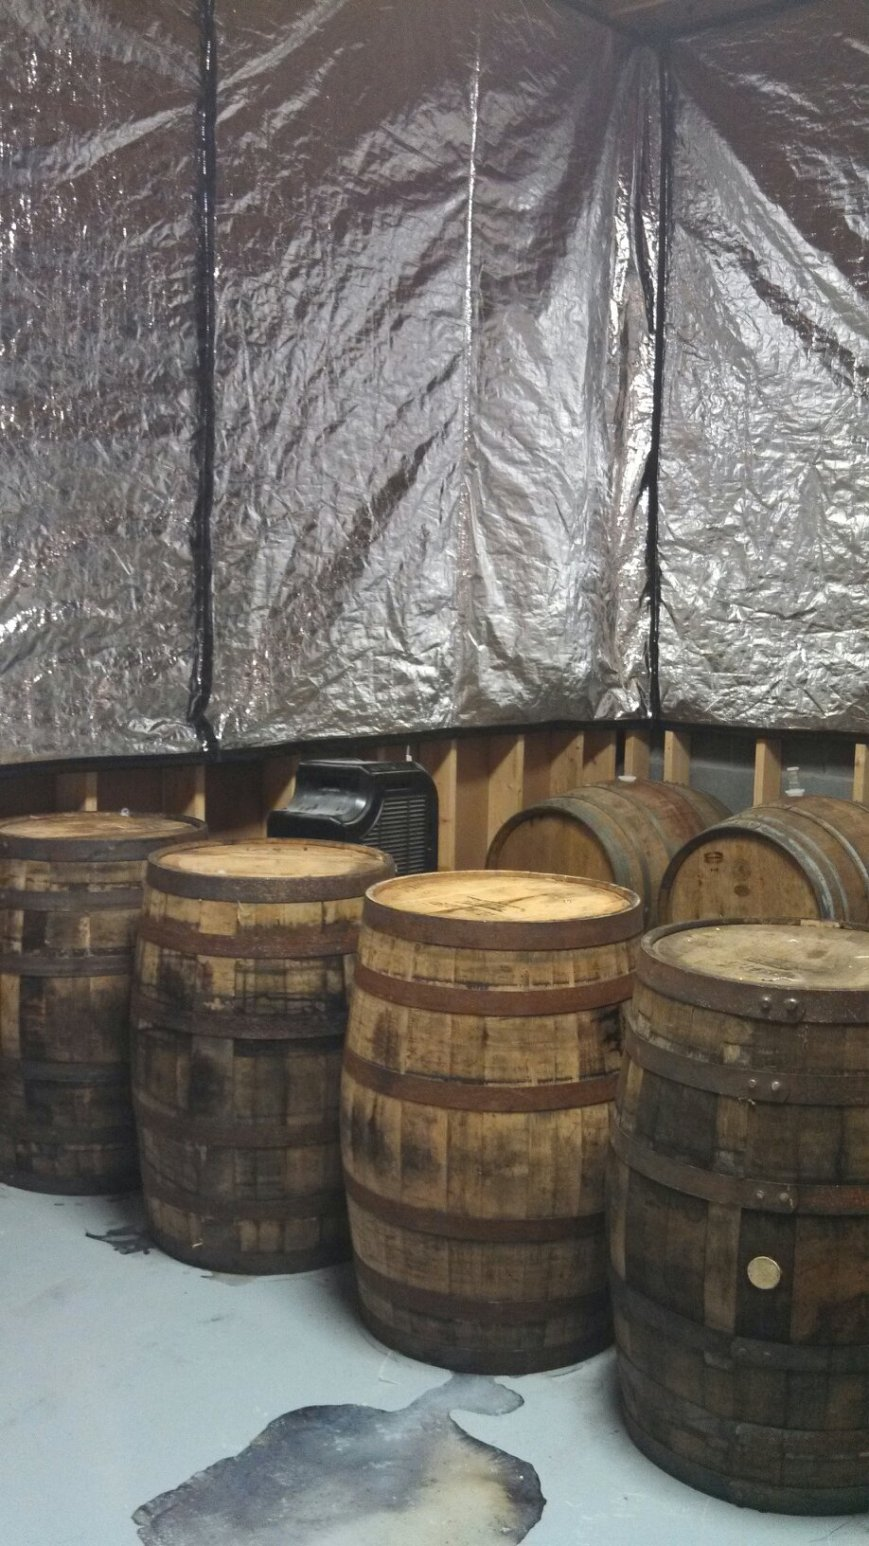 A new trend in brewing craft beers is letting them age in wine barrels. I can't wait to try these!